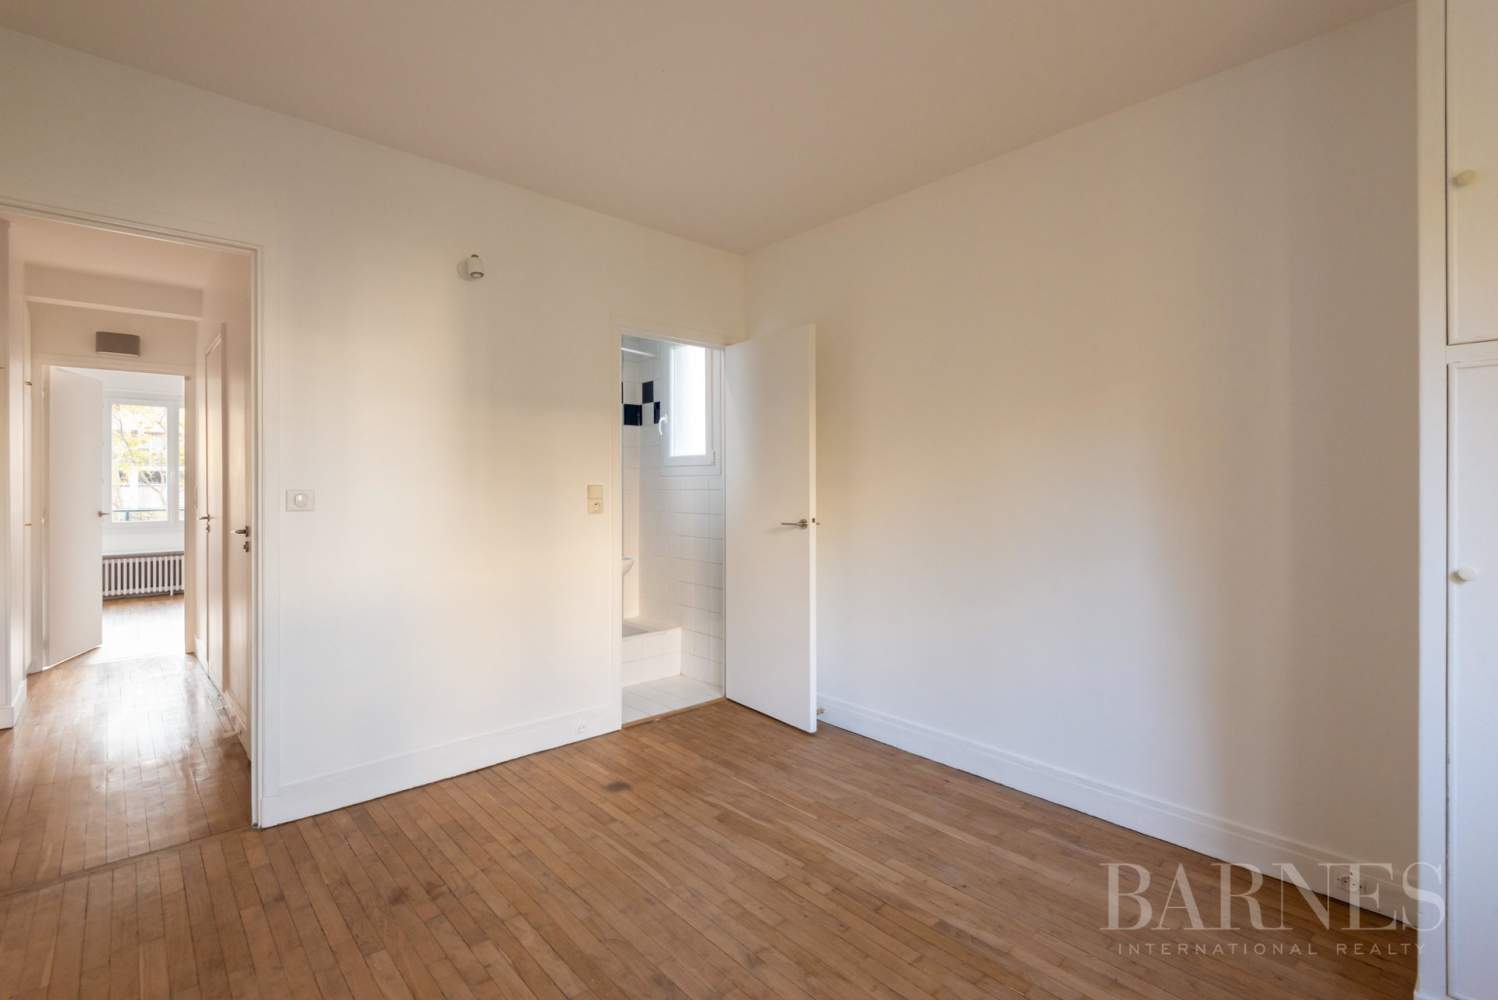 NEUILLY CHEZY APPARTEMENT 3 CHAMBRES VIDE PARKING BALCON picture 9